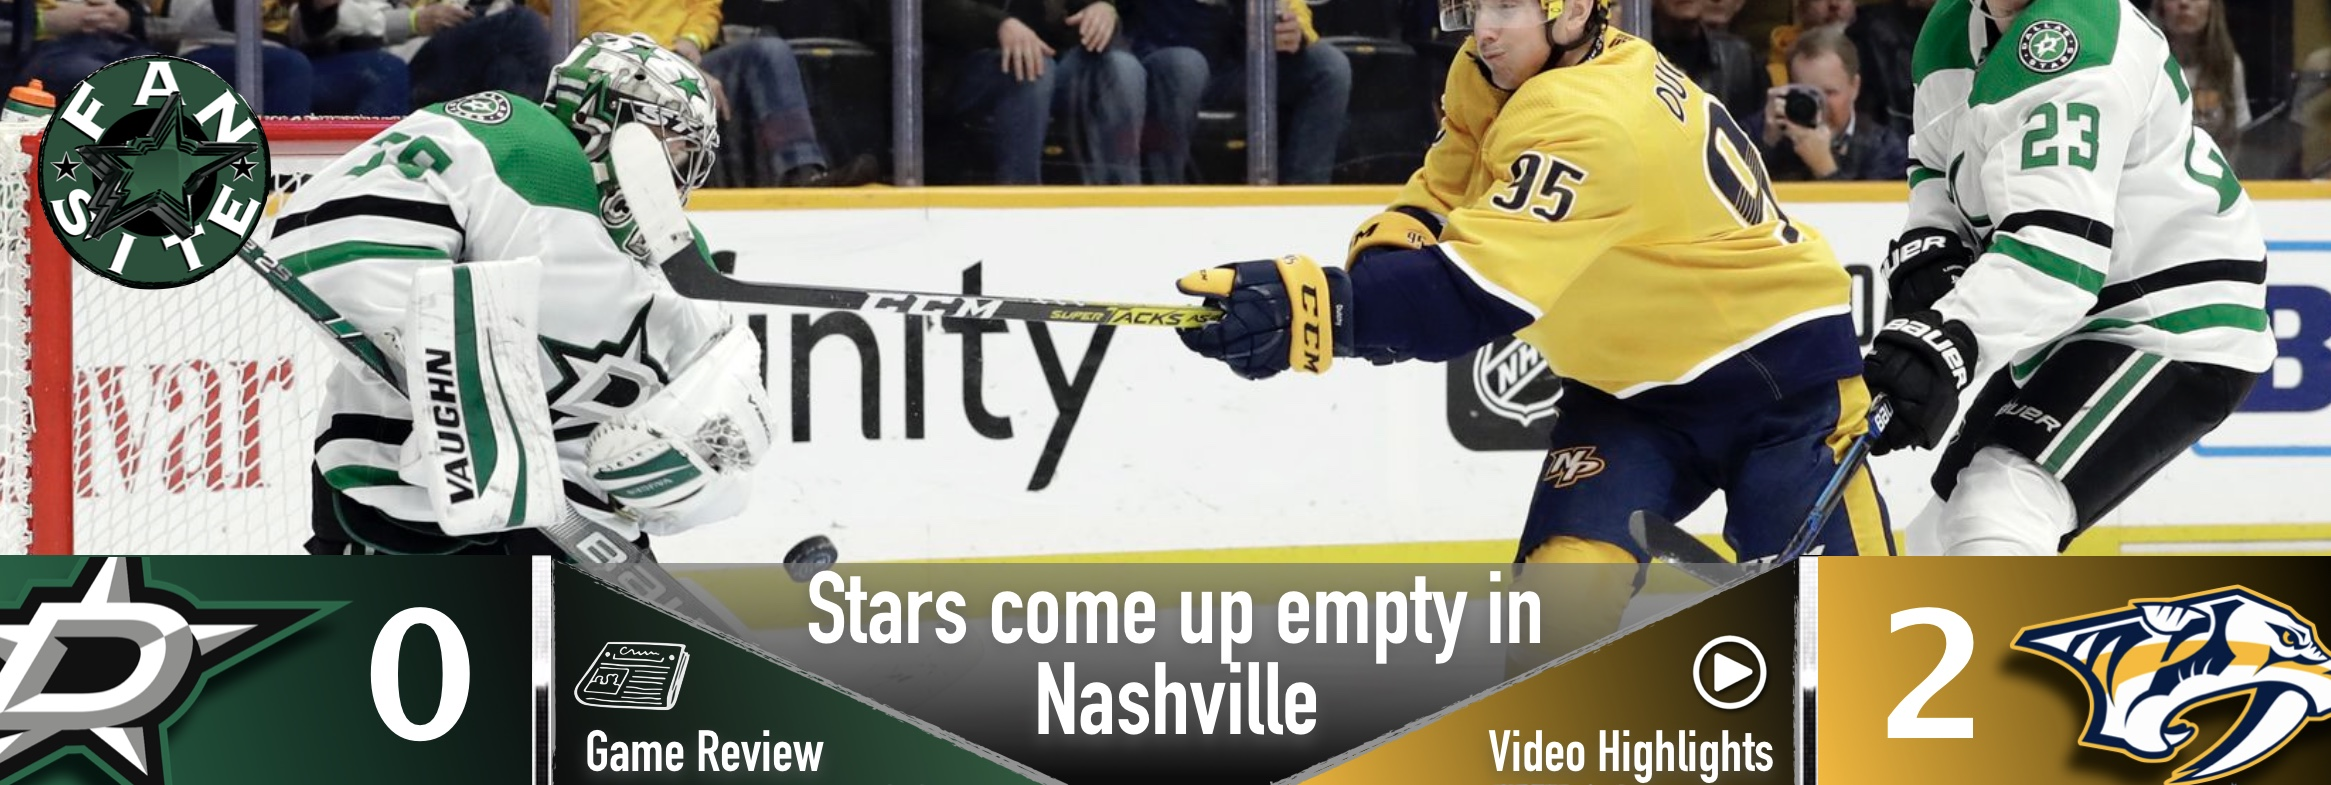 Stars come up empty in Nashville